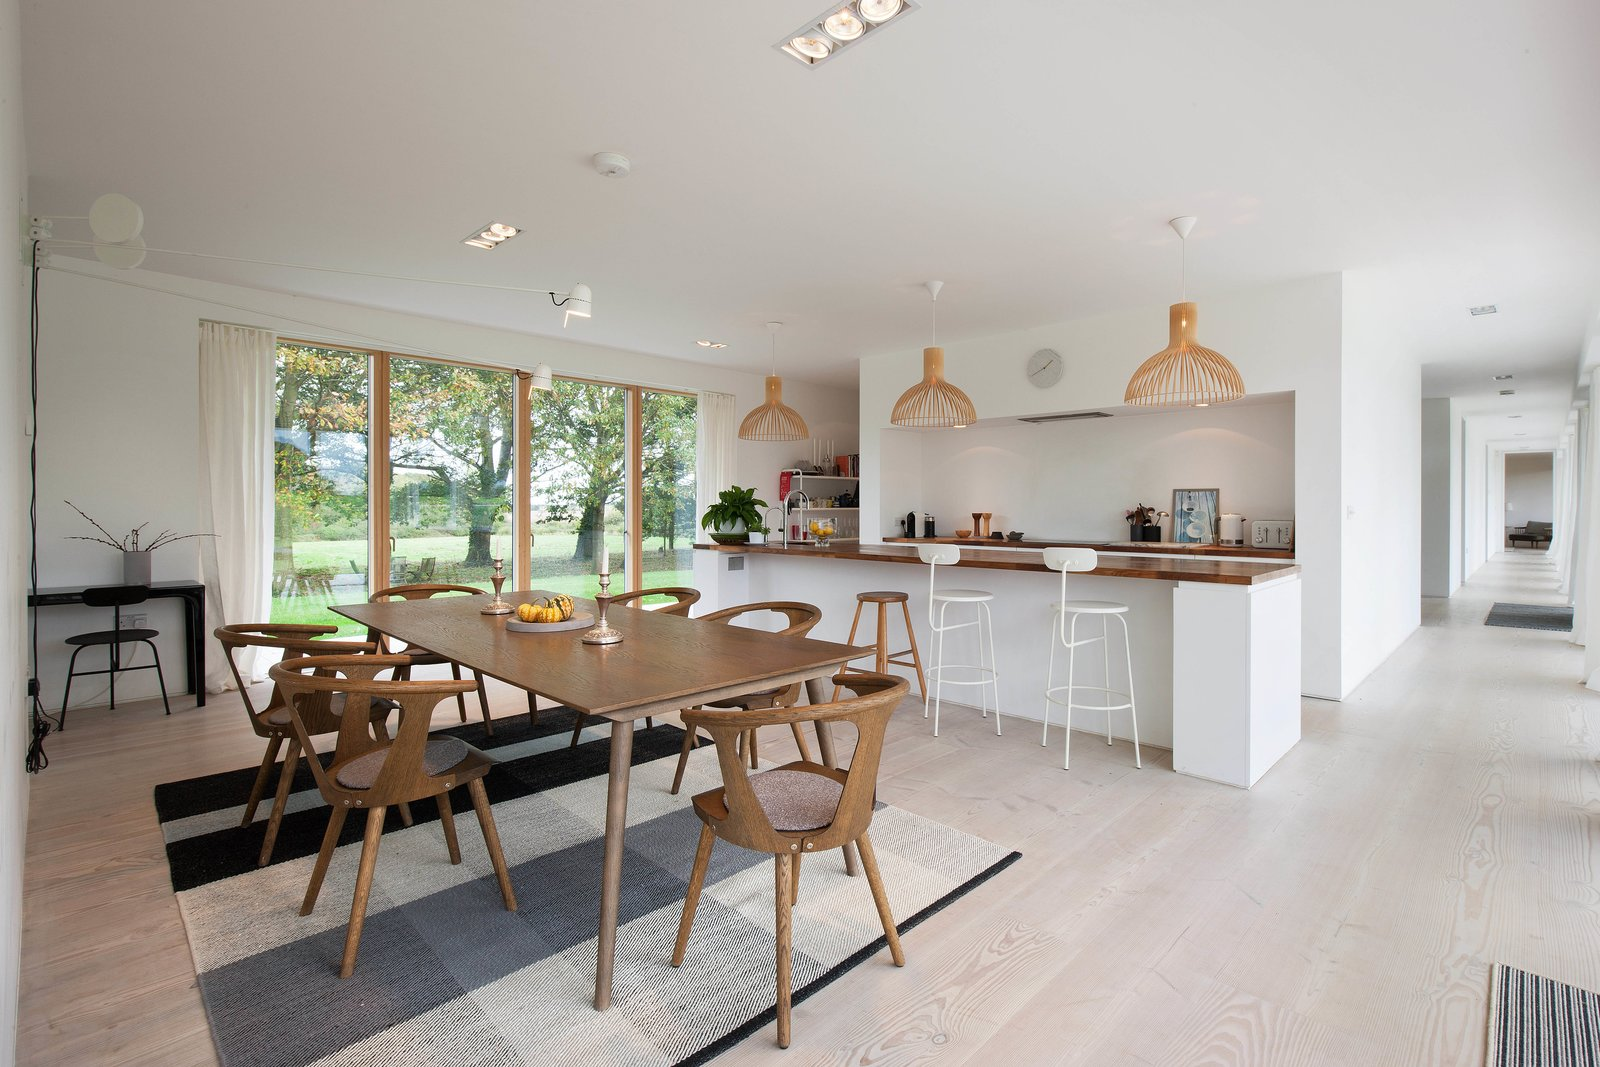 Dining, Stools, Recessed, Table, Light Hardwood, Chair, Bar, Wall, and Pendant The bright, open, contemporary kitchen.  Best Dining Table Recessed Stools Light Hardwood Photos from A Scandinavian-Style Pavilion in England Is Listed For $2.1M